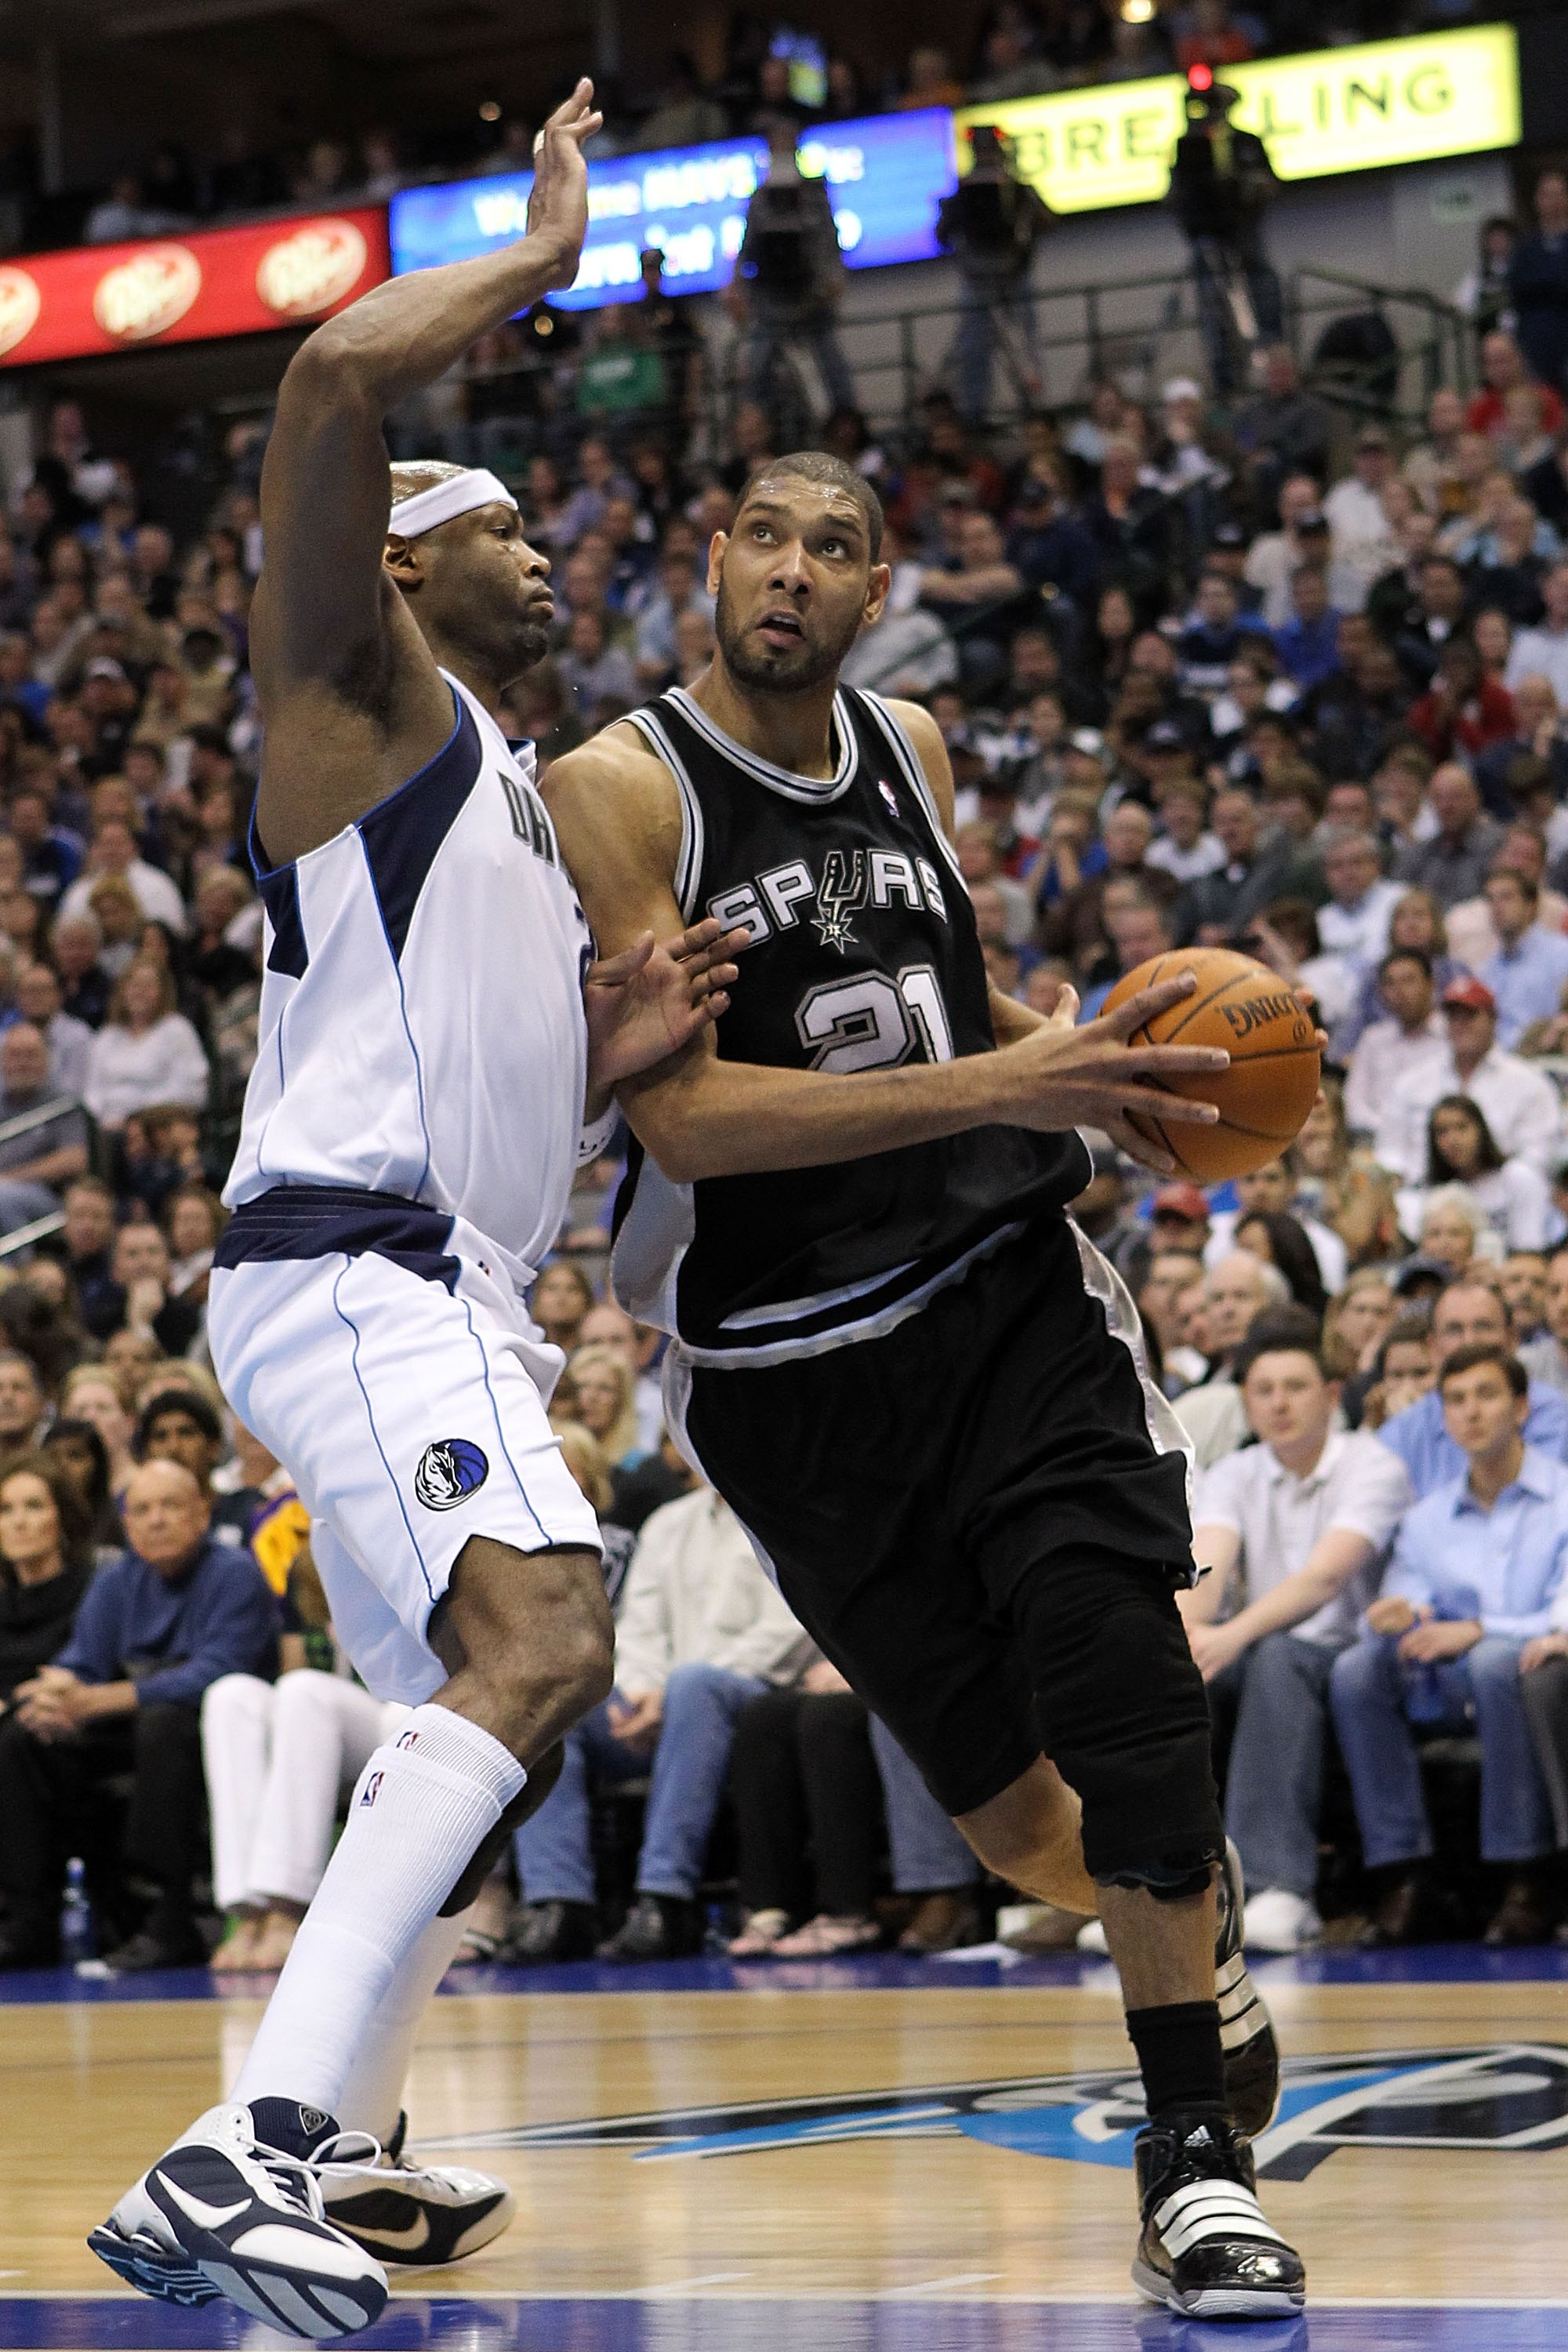 DALLAS - APRIL 18:  Forward Tim Duncan #21 of the San Antonio Spurs dribbles the ball against Erick Dampier #25 of the Dallas Mavericks in Game One of the Western Conference Quarterfinals during the 2010 NBA Playoffs at American Airlines Center on April 1